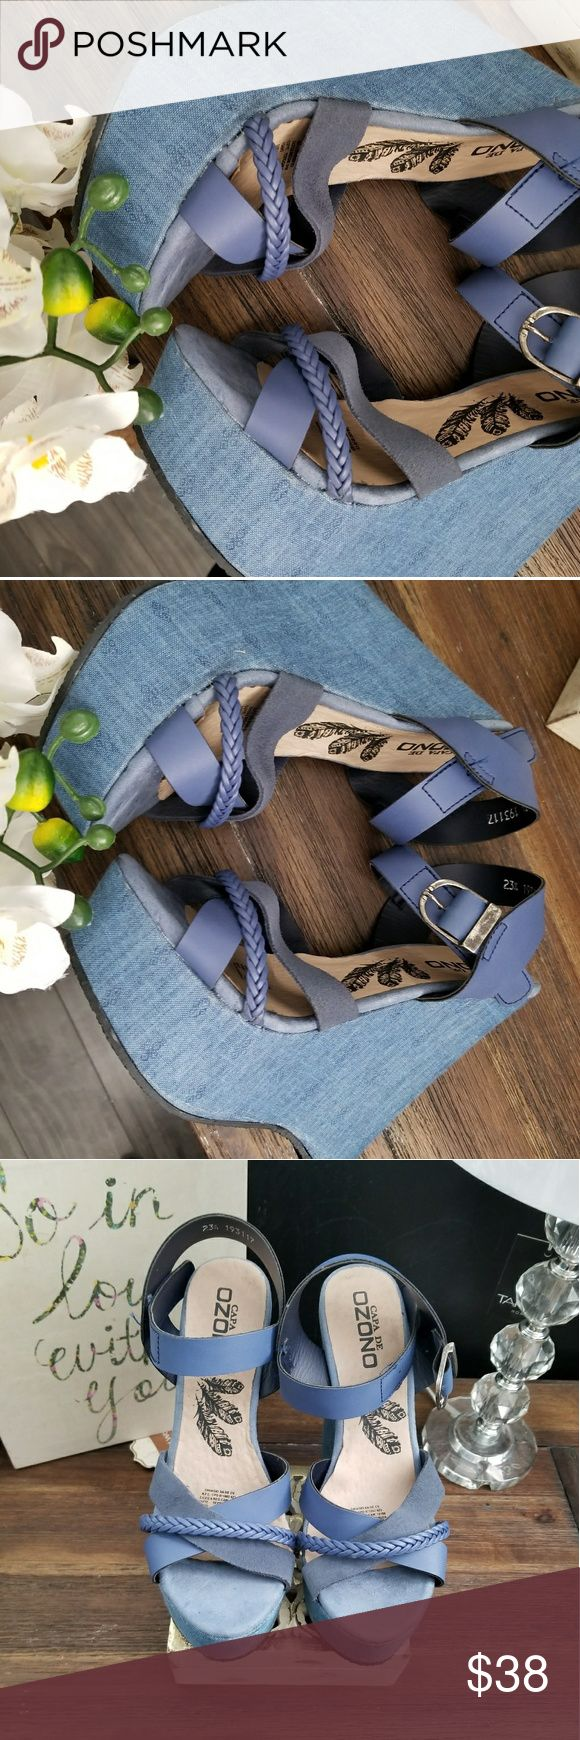 Blue jeans wedges Blue 6 1/2 Very comfortable BRAND NEW  Never worn   Capa de ozono Shoes Wedges